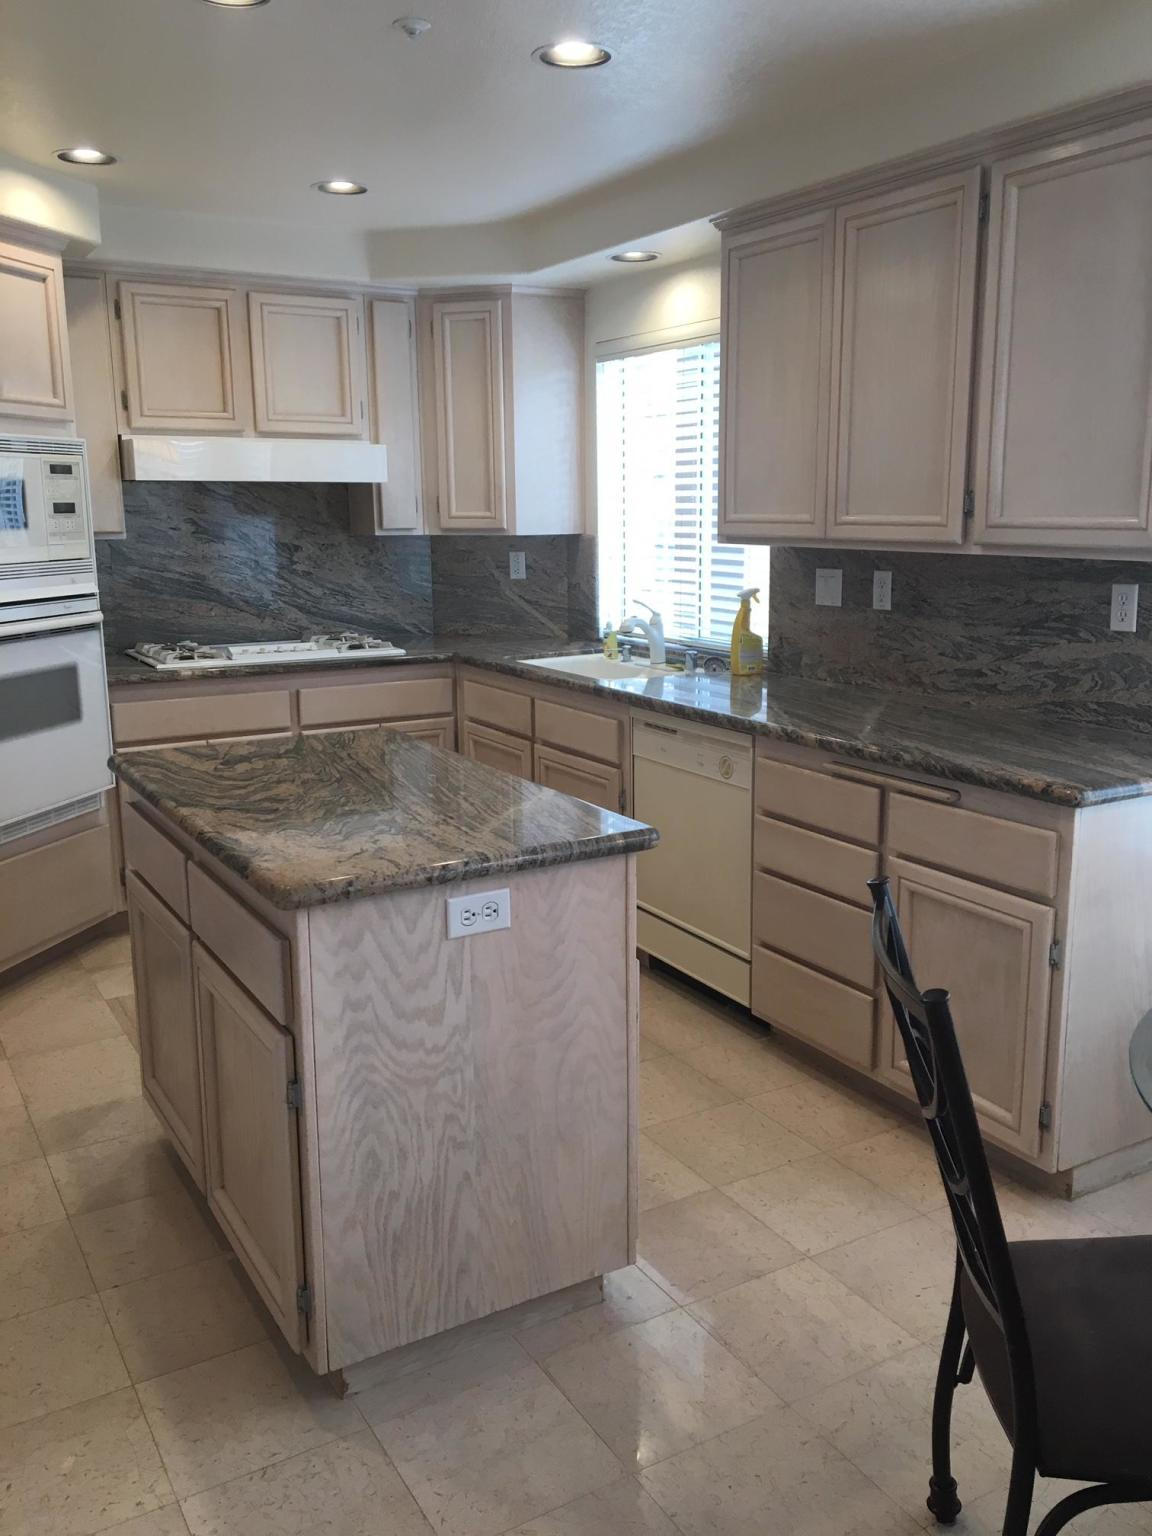 1511 Upland Hills Dr S, Upland, Ca – 2 Bed,  (Image 1 of 25)